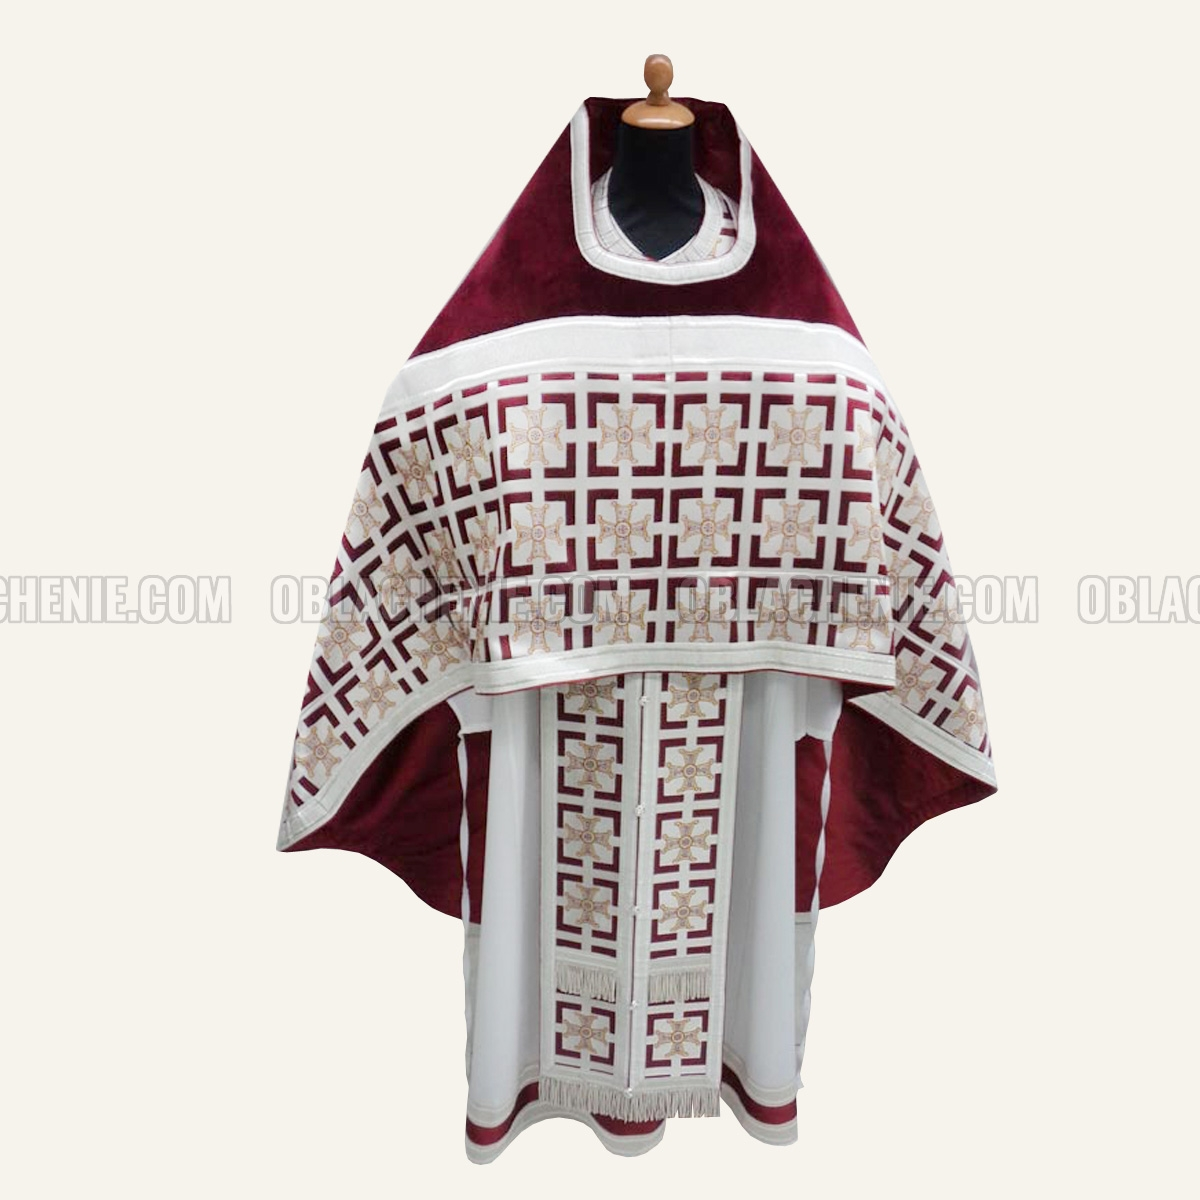 Priest's vestments 10069